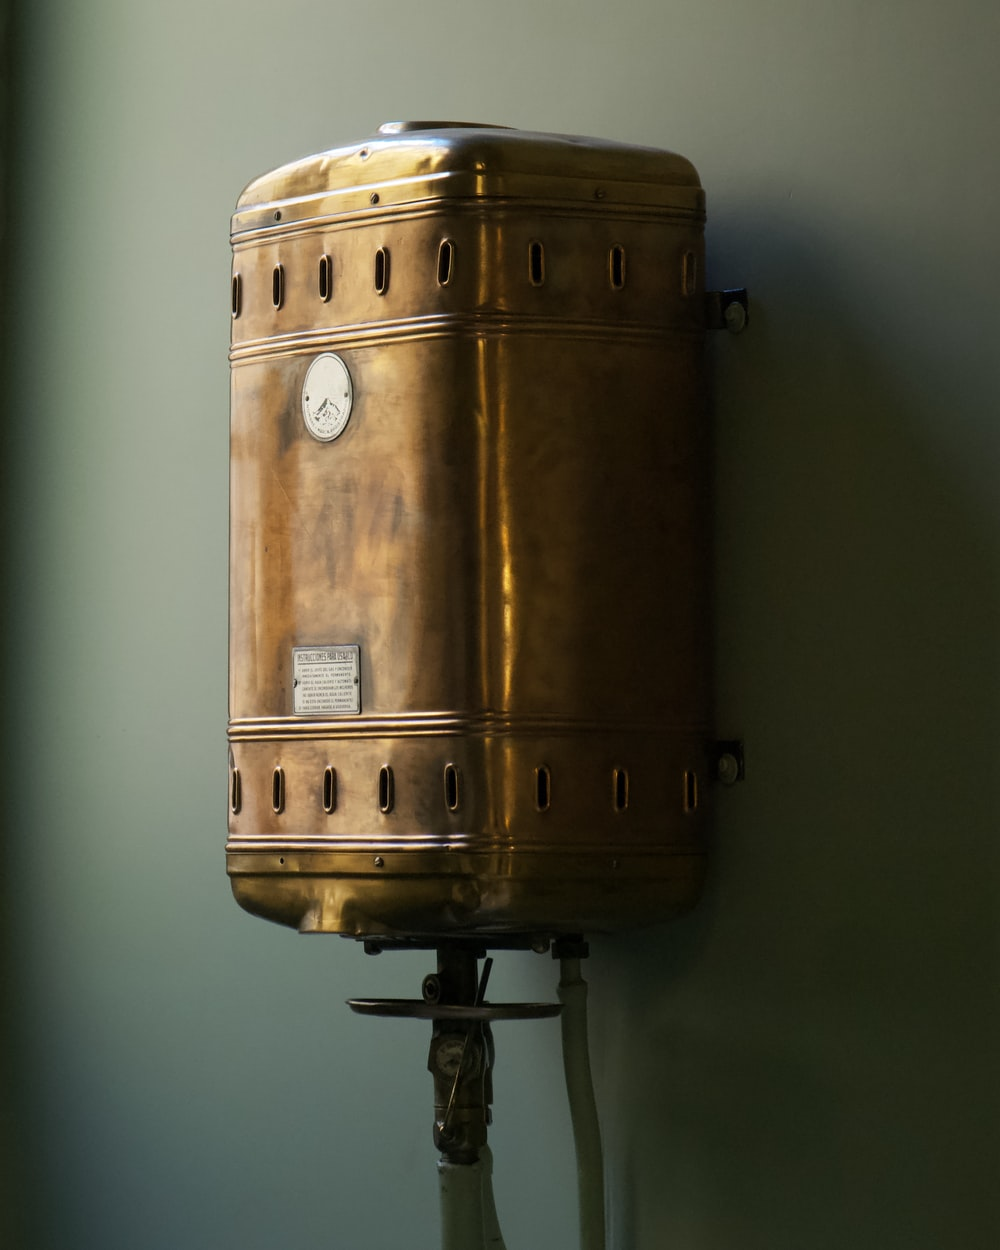 brown steel container on white wall